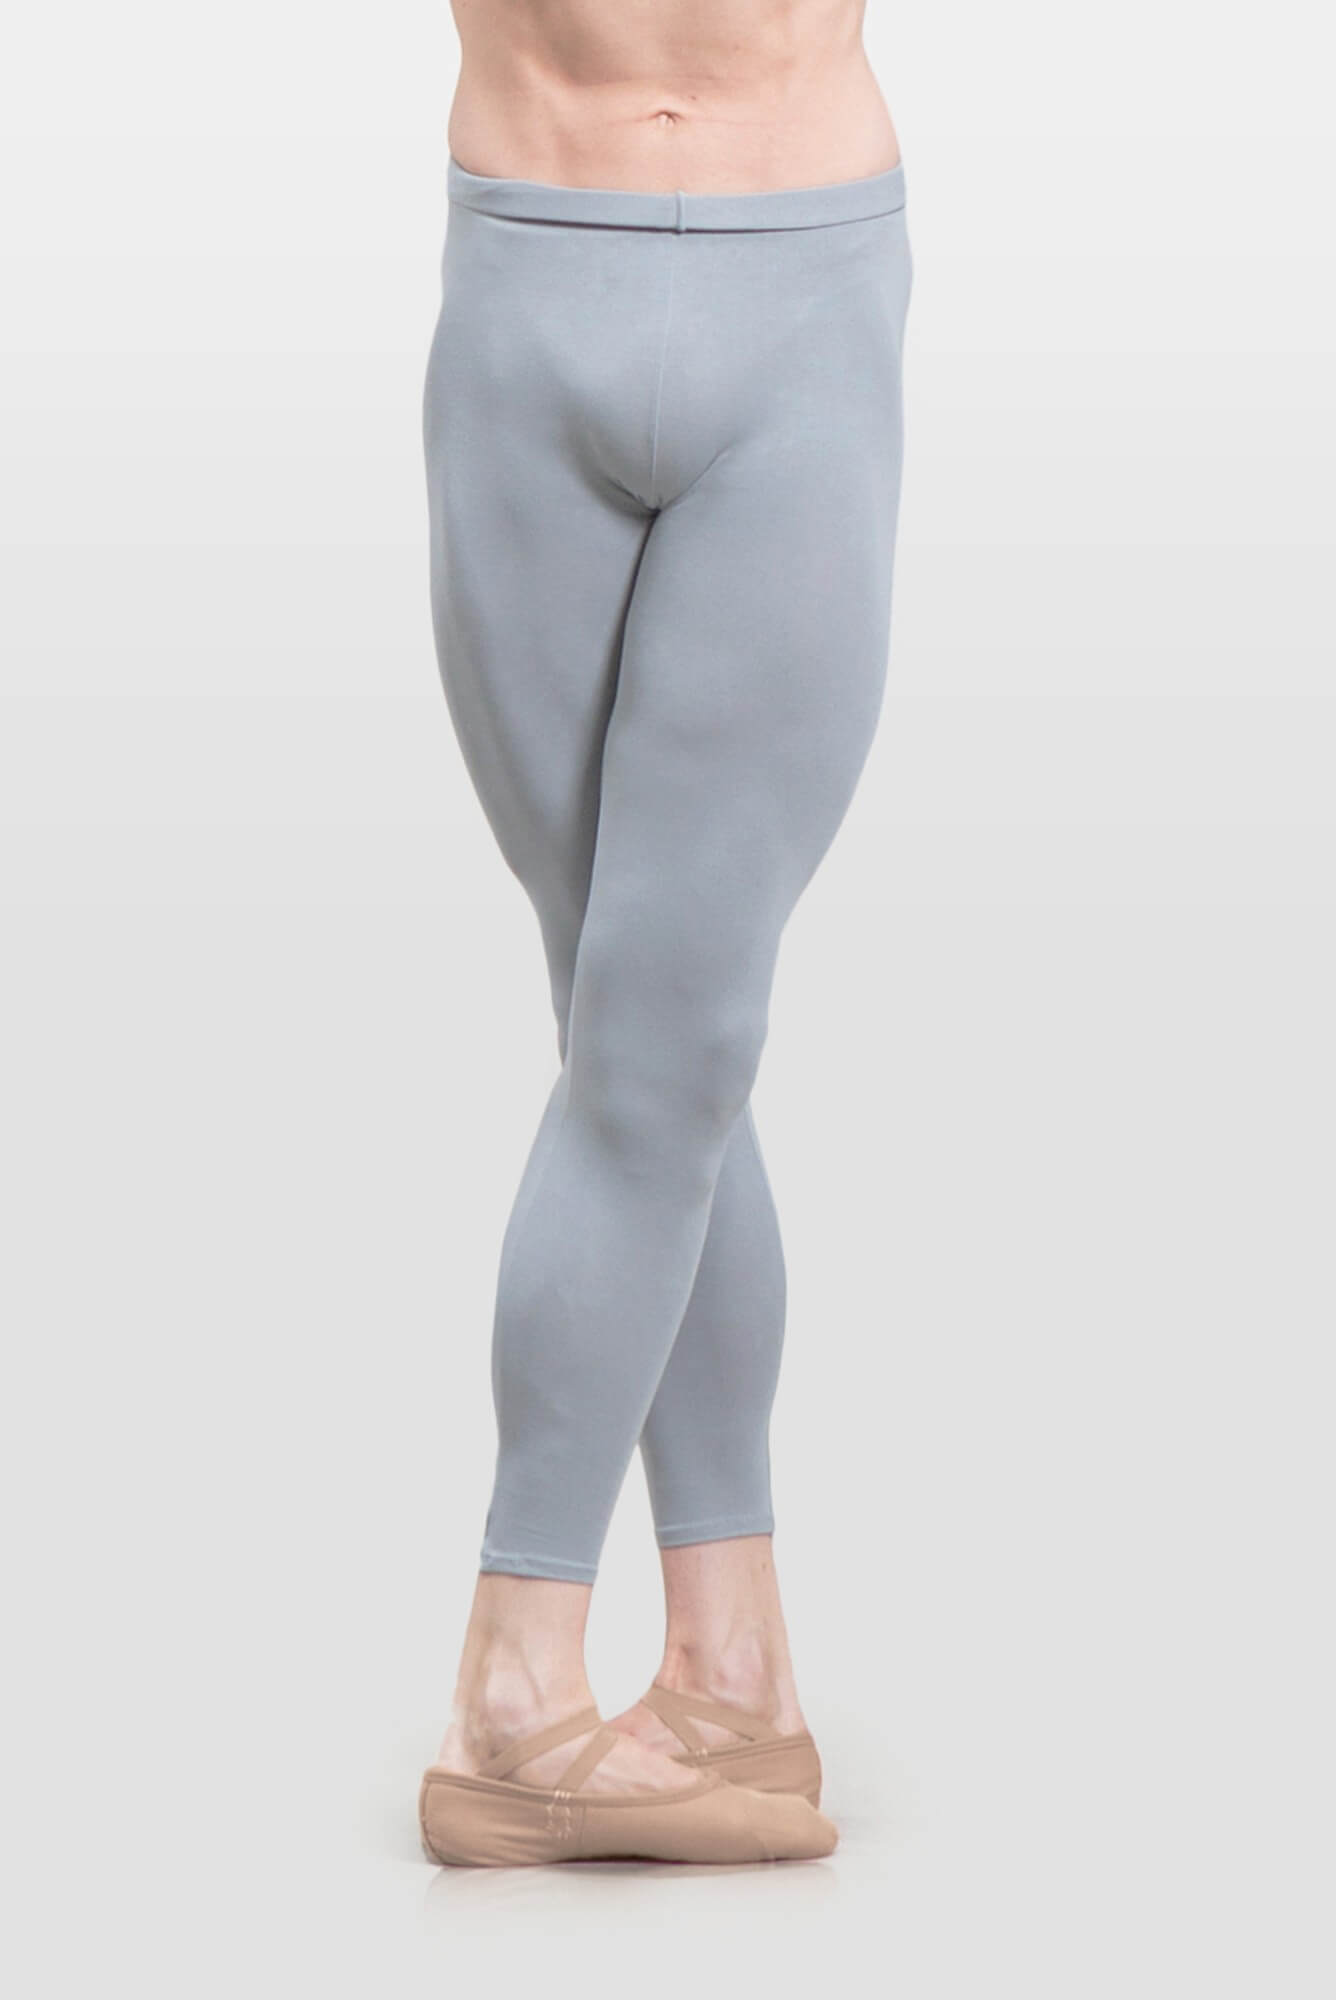 c629973fc0fac Tights ALBAN. Loading zoom. View Full Size